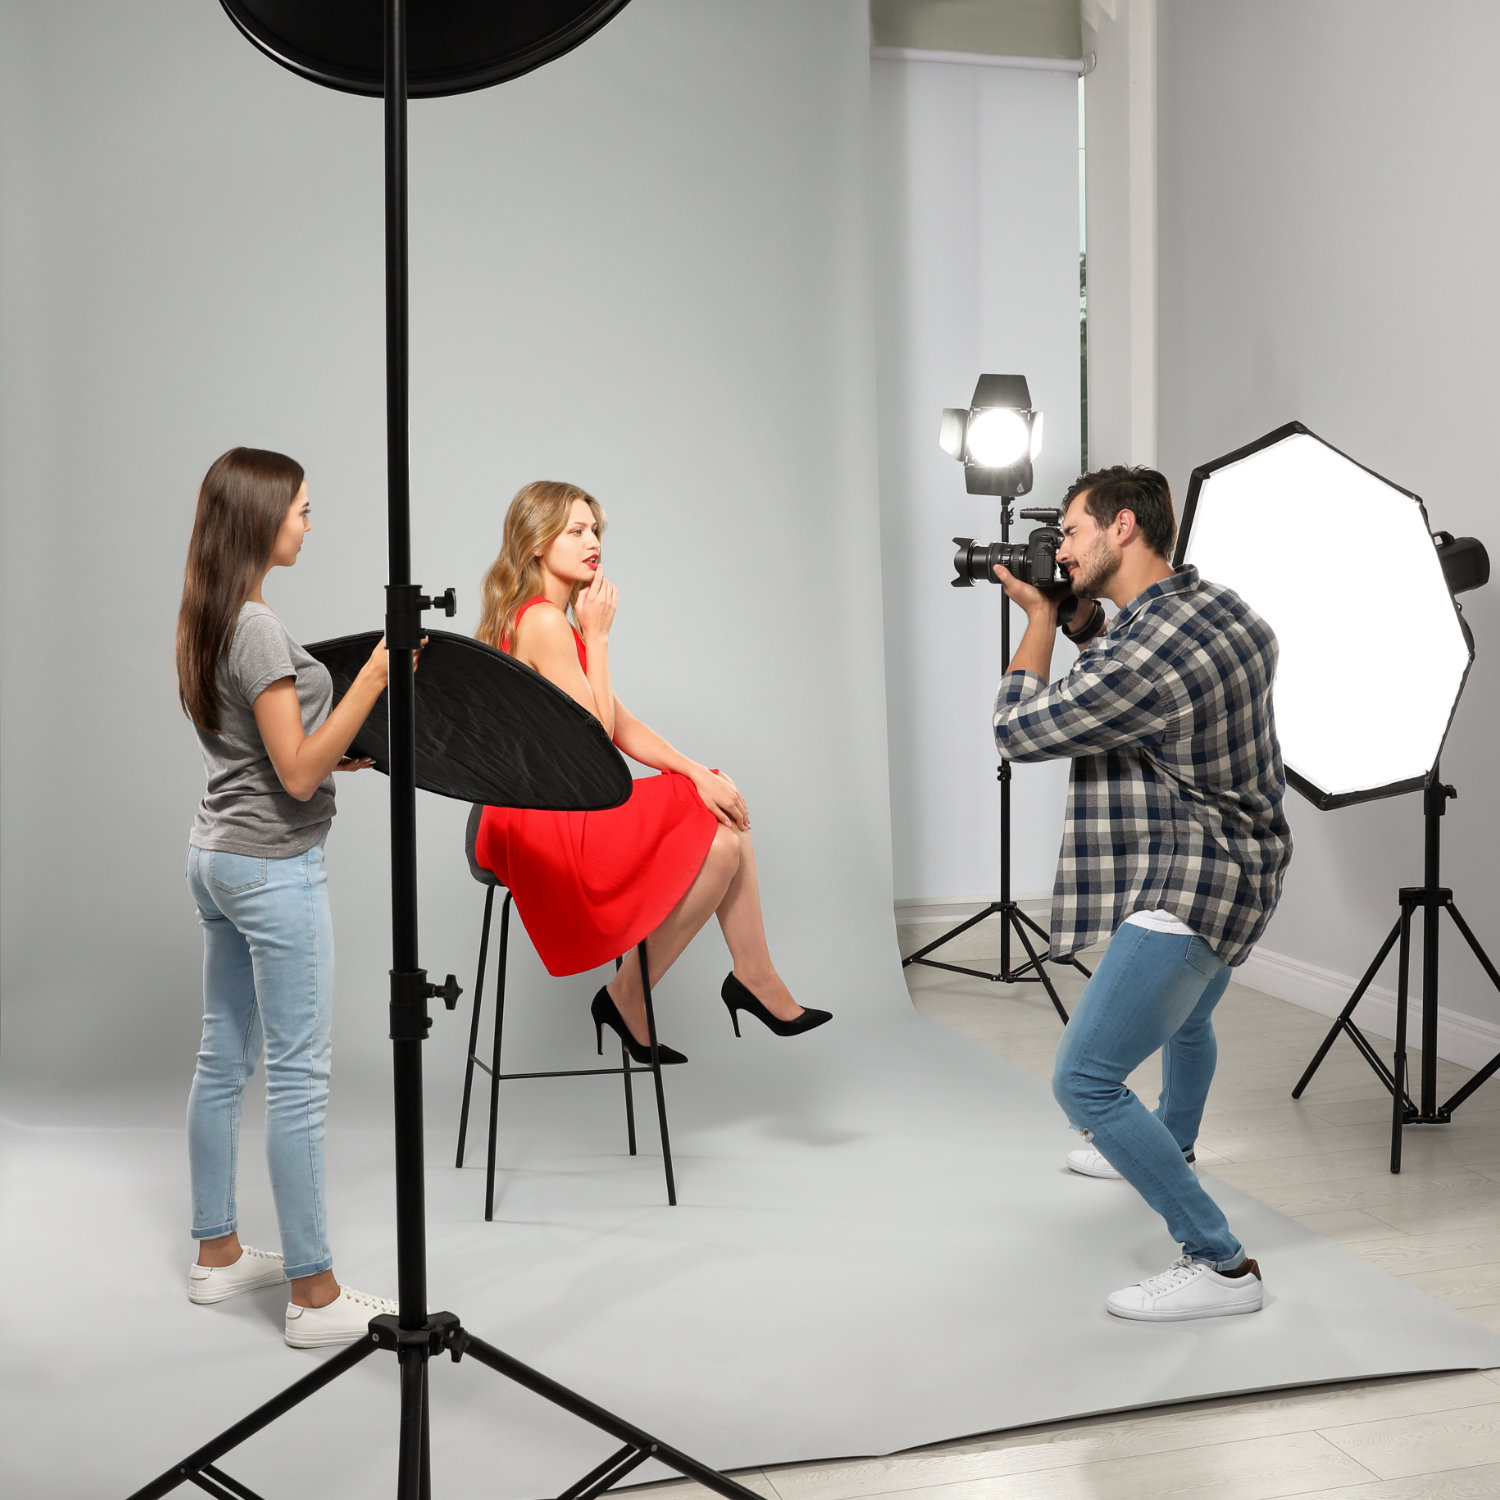 Headshots to put on your website & Social Media